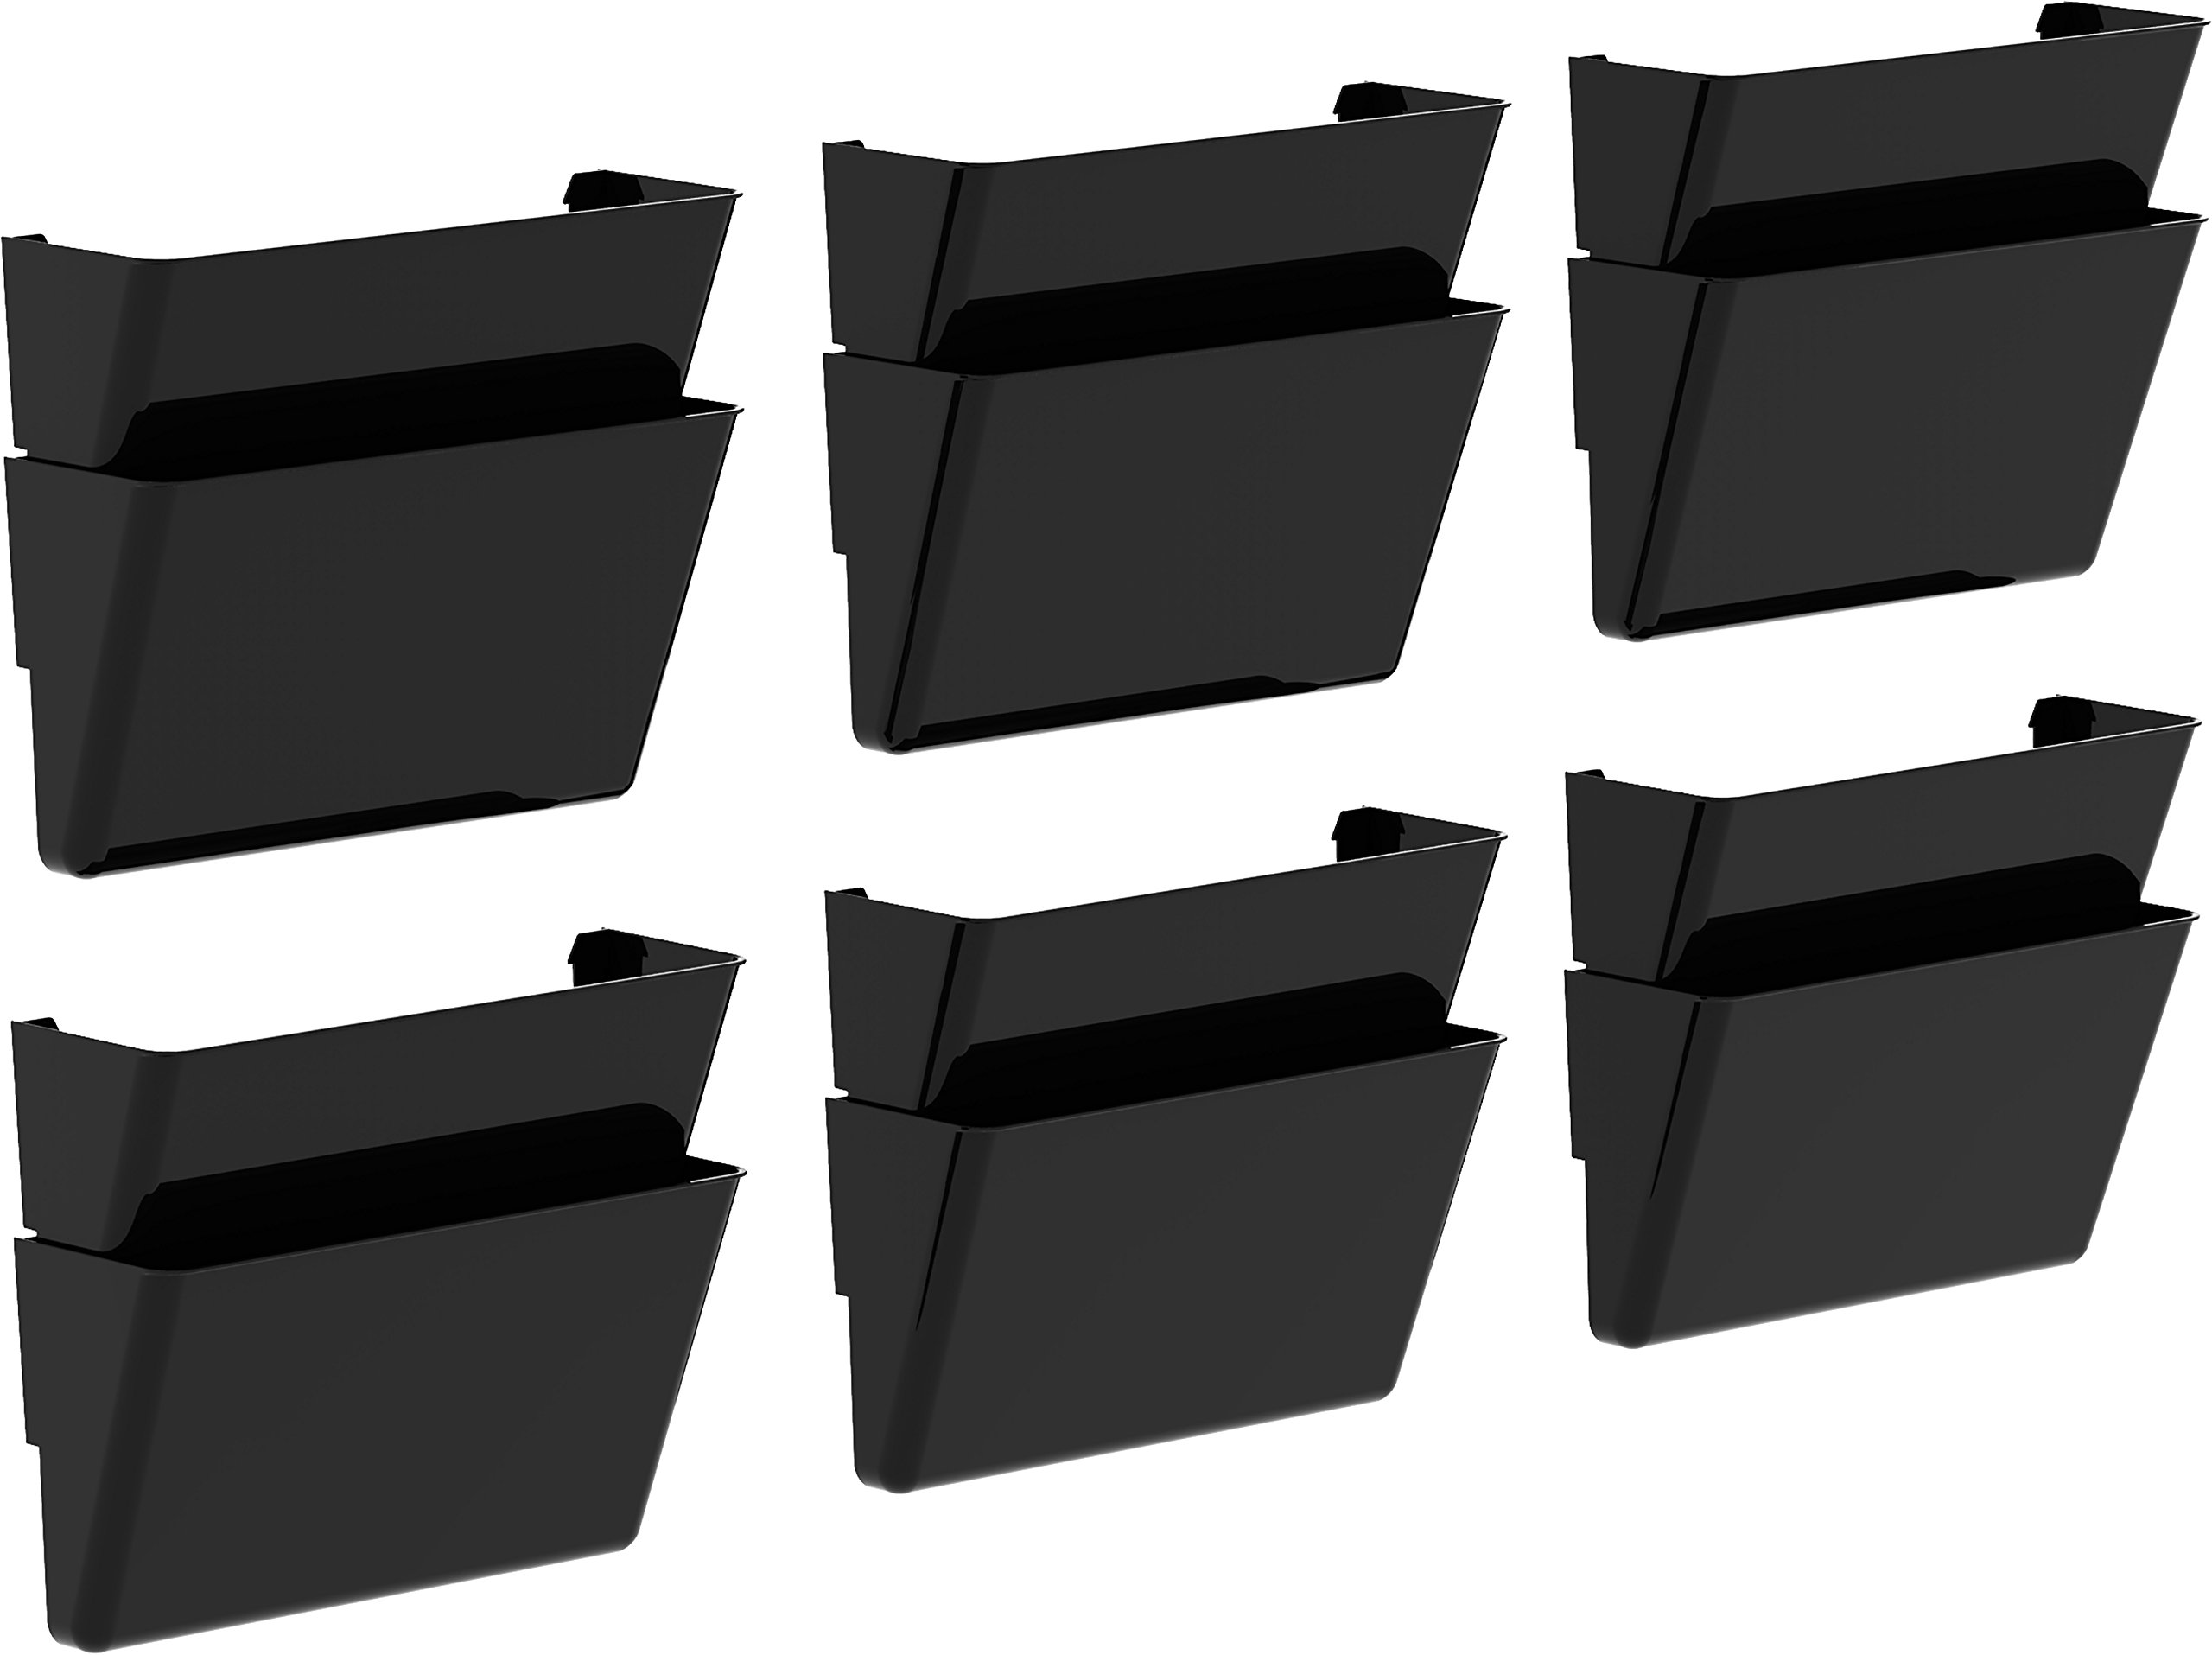 Storex Recycled Legal Sized Wall Files, 2-Pack, Black, Case of 6 (STX70210B06C)